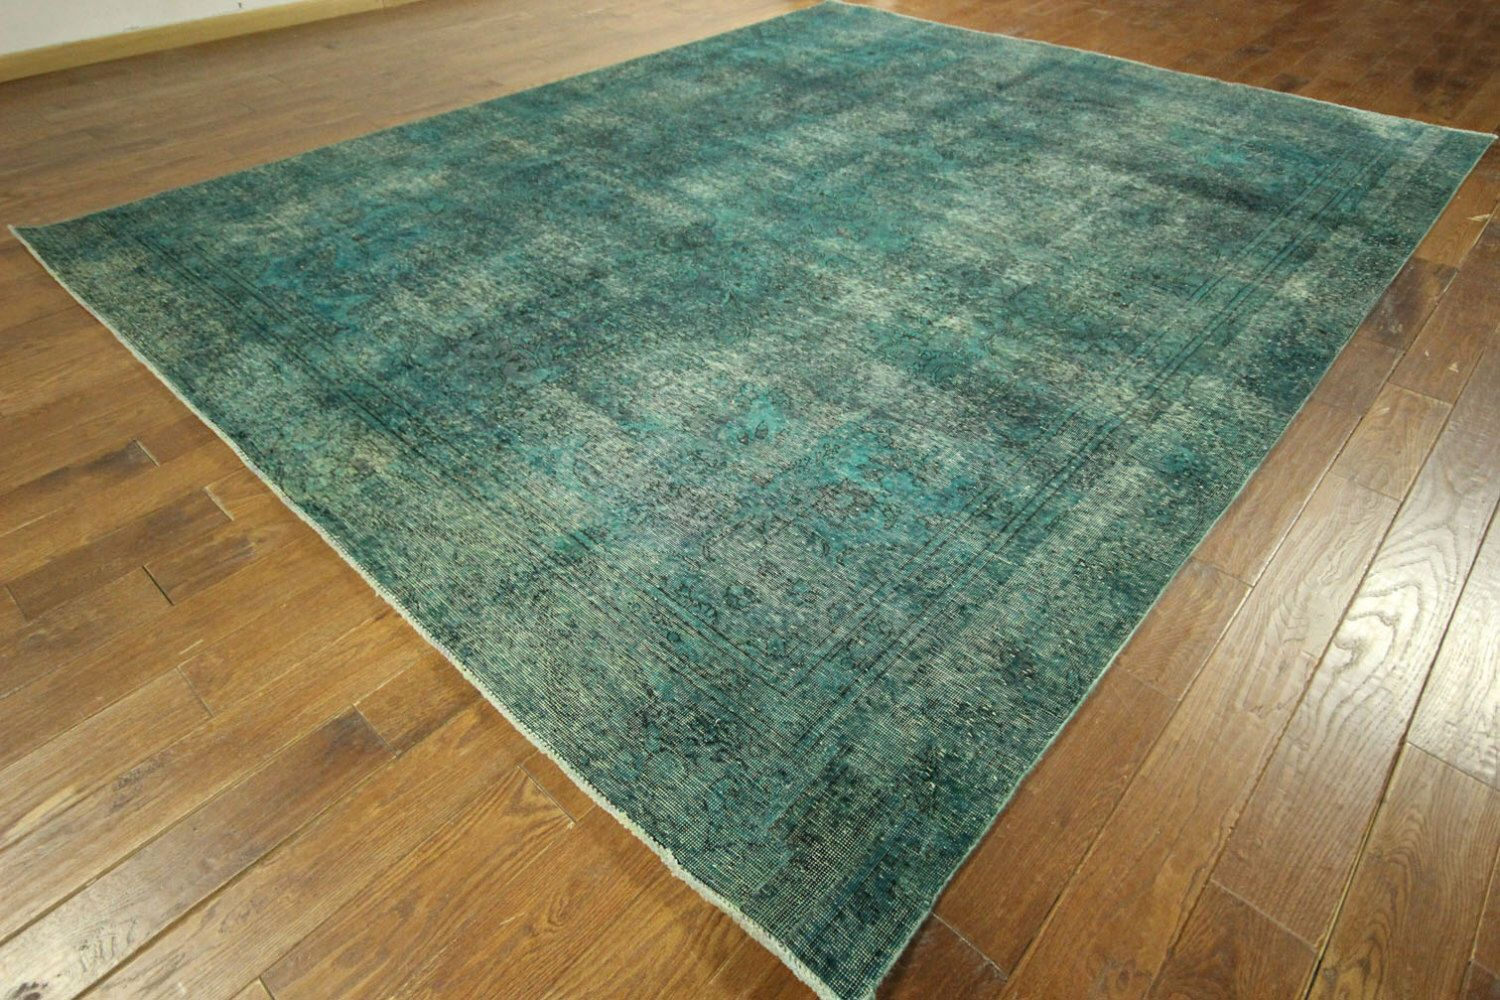 New Handmade Blue Oriental Overdyed Hand Knotted 9'x12' Floral Wool Area Rug H7381 by manhattanrugs on Etsy https://www.etsy.com/listing/226698800/new-handmade-blue-oriental-overdyed-hand